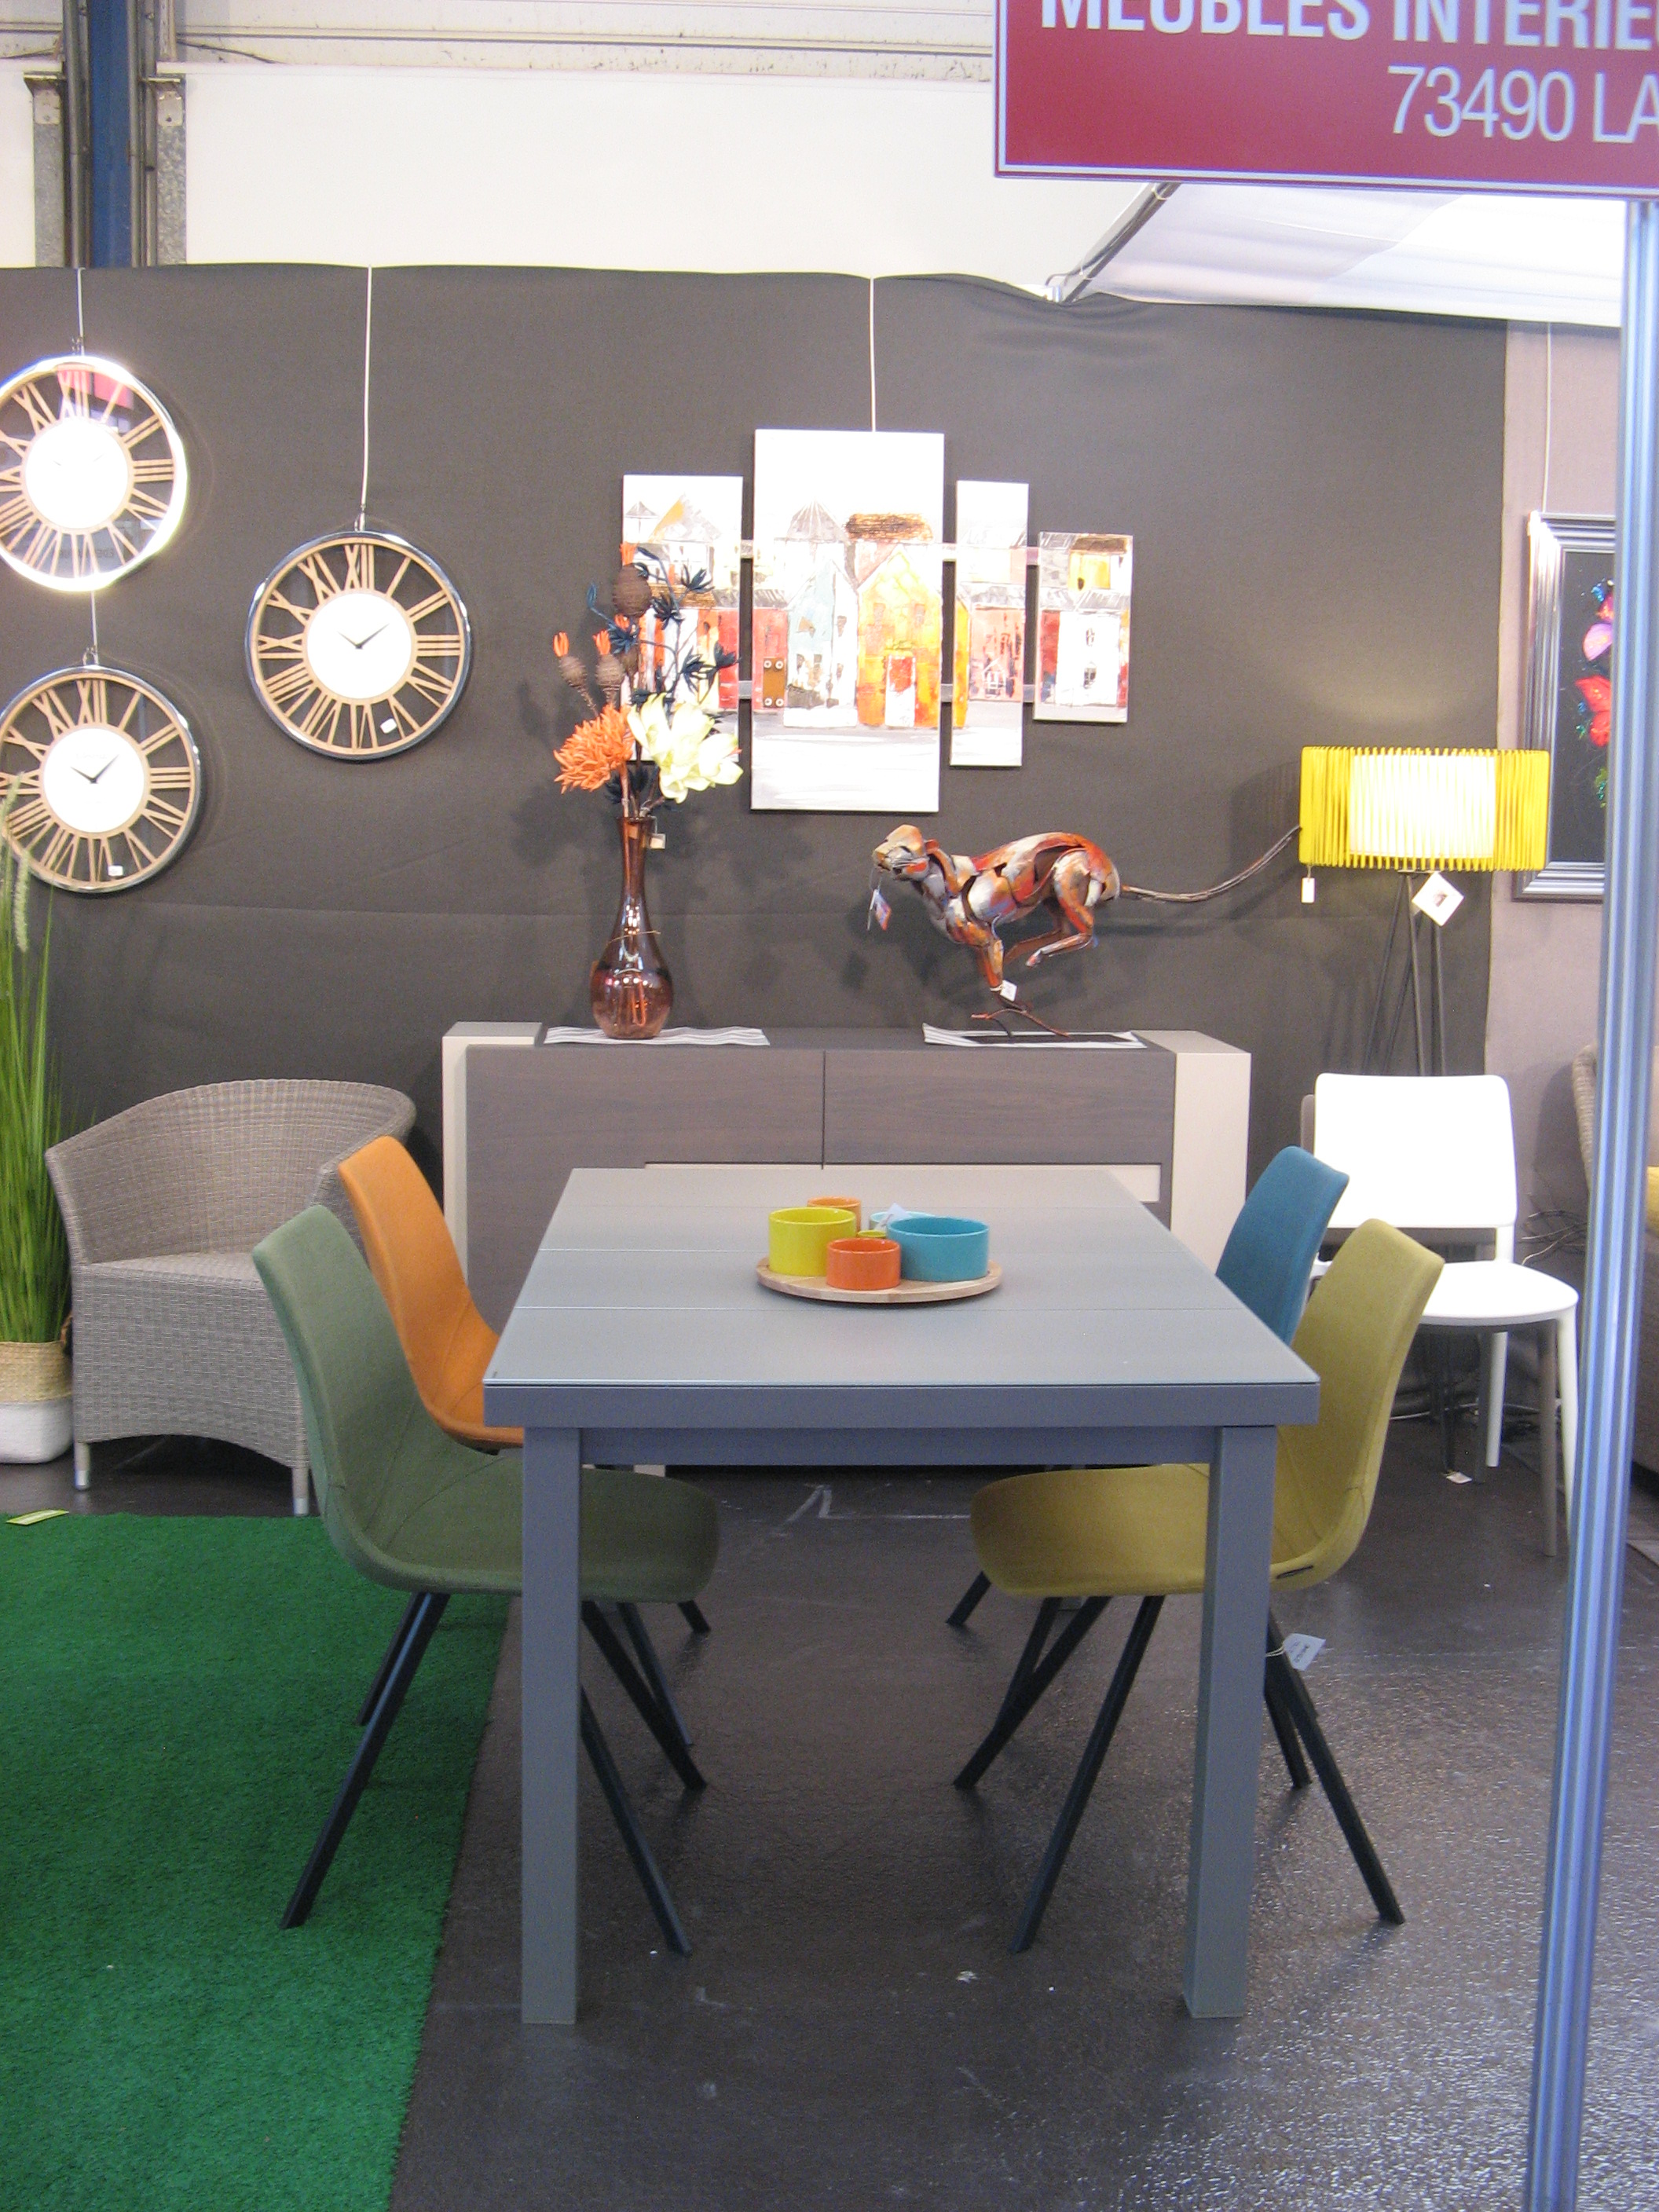 Salon habitat jardin du 13 au 16 avril 2018 for Salon habitat chambery